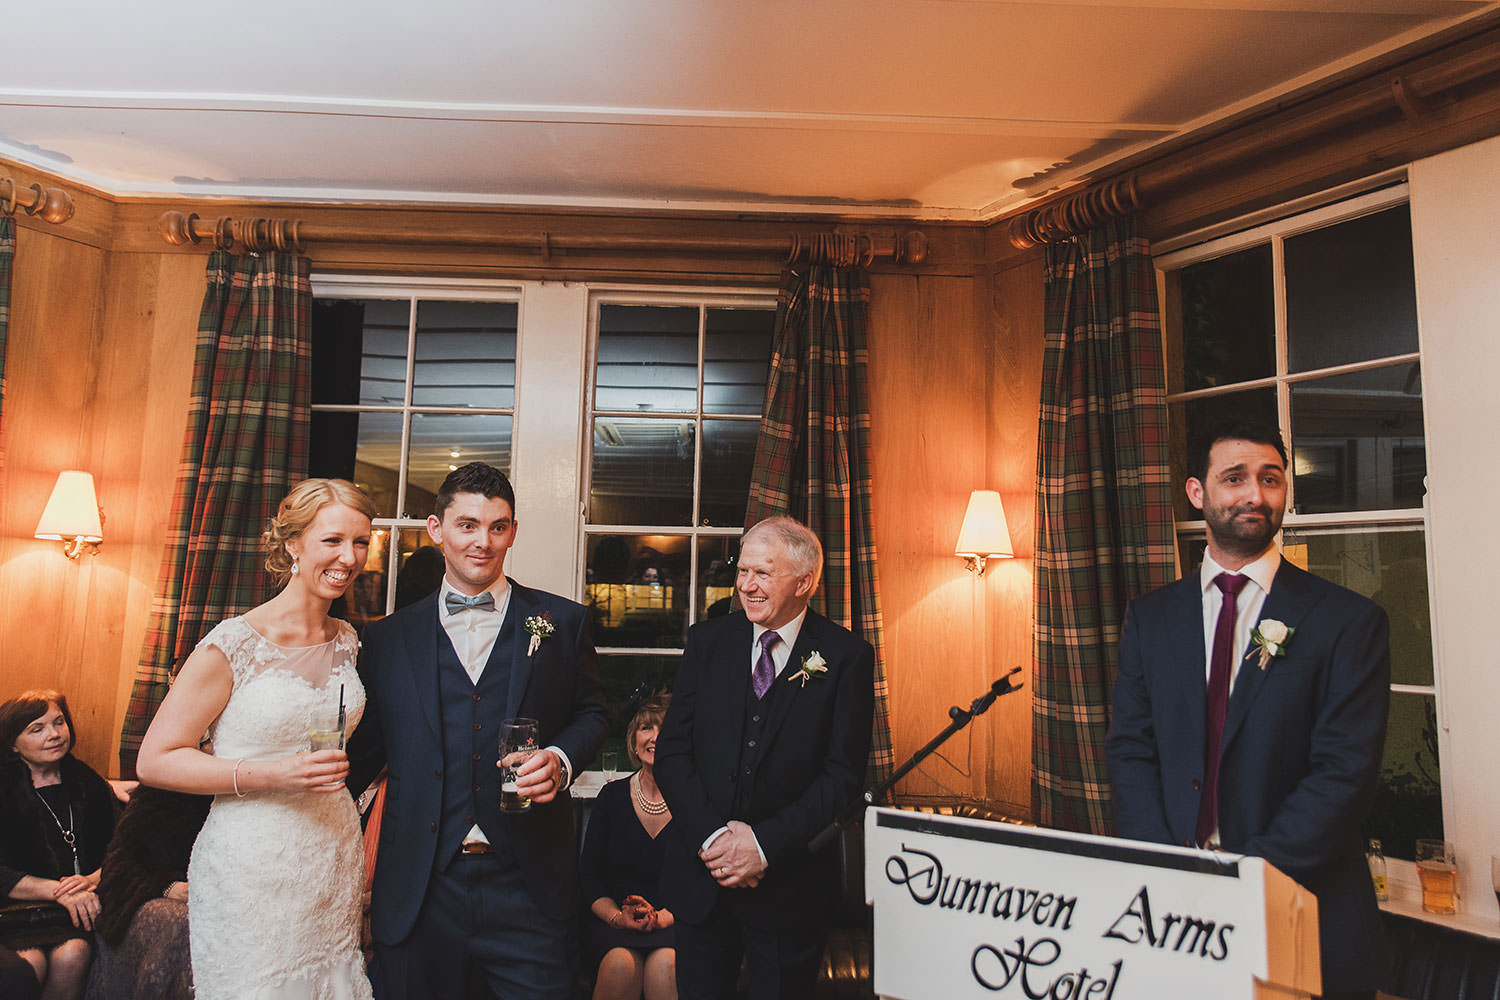 dunraven-arms-hotel-wedding-photography-139.jpg